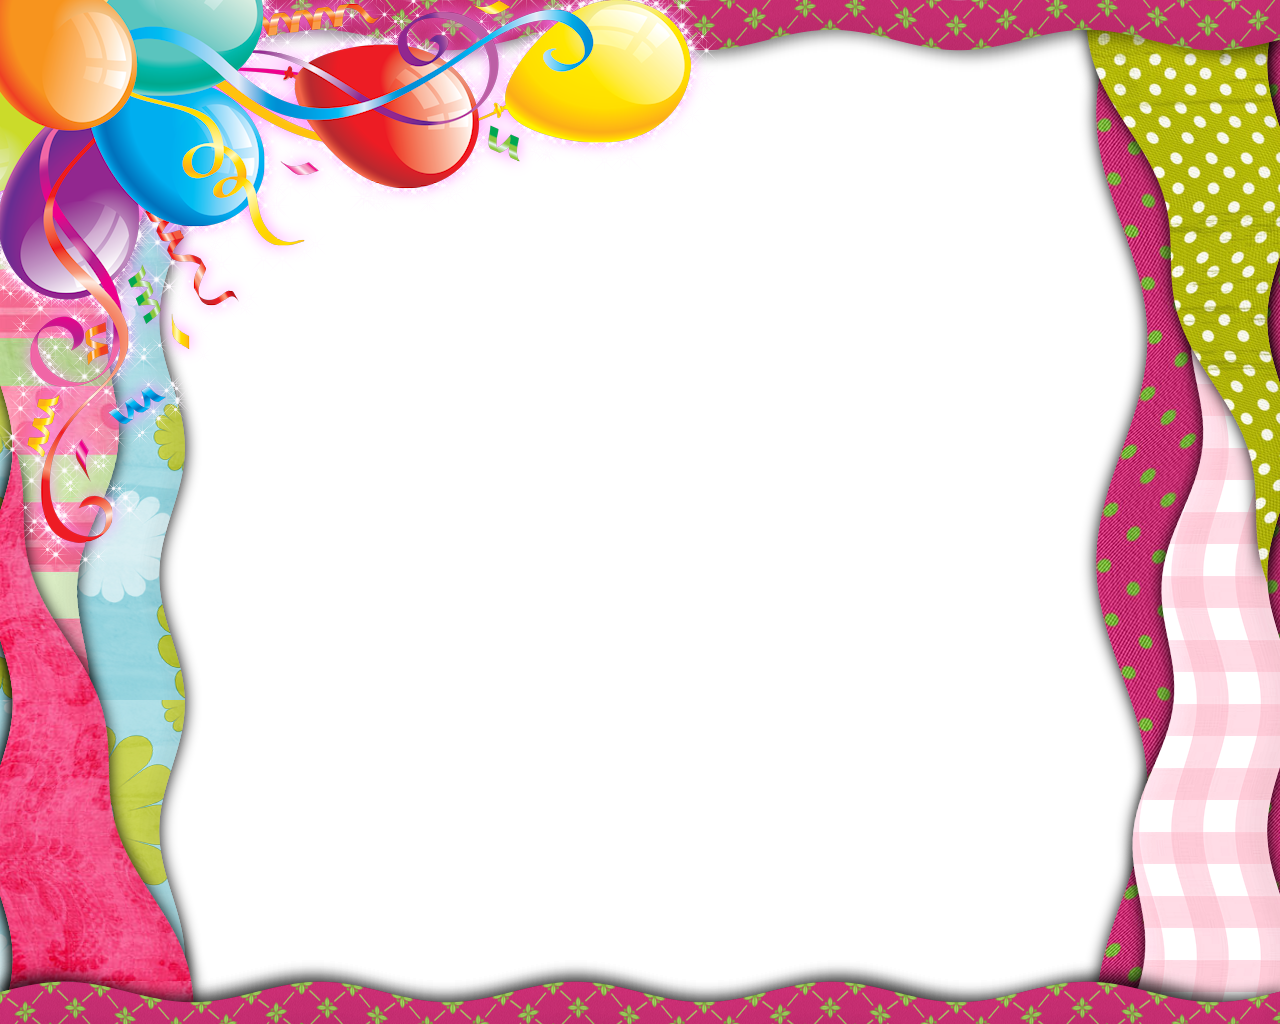 Happy birthday frames and borders png. Free download clip art